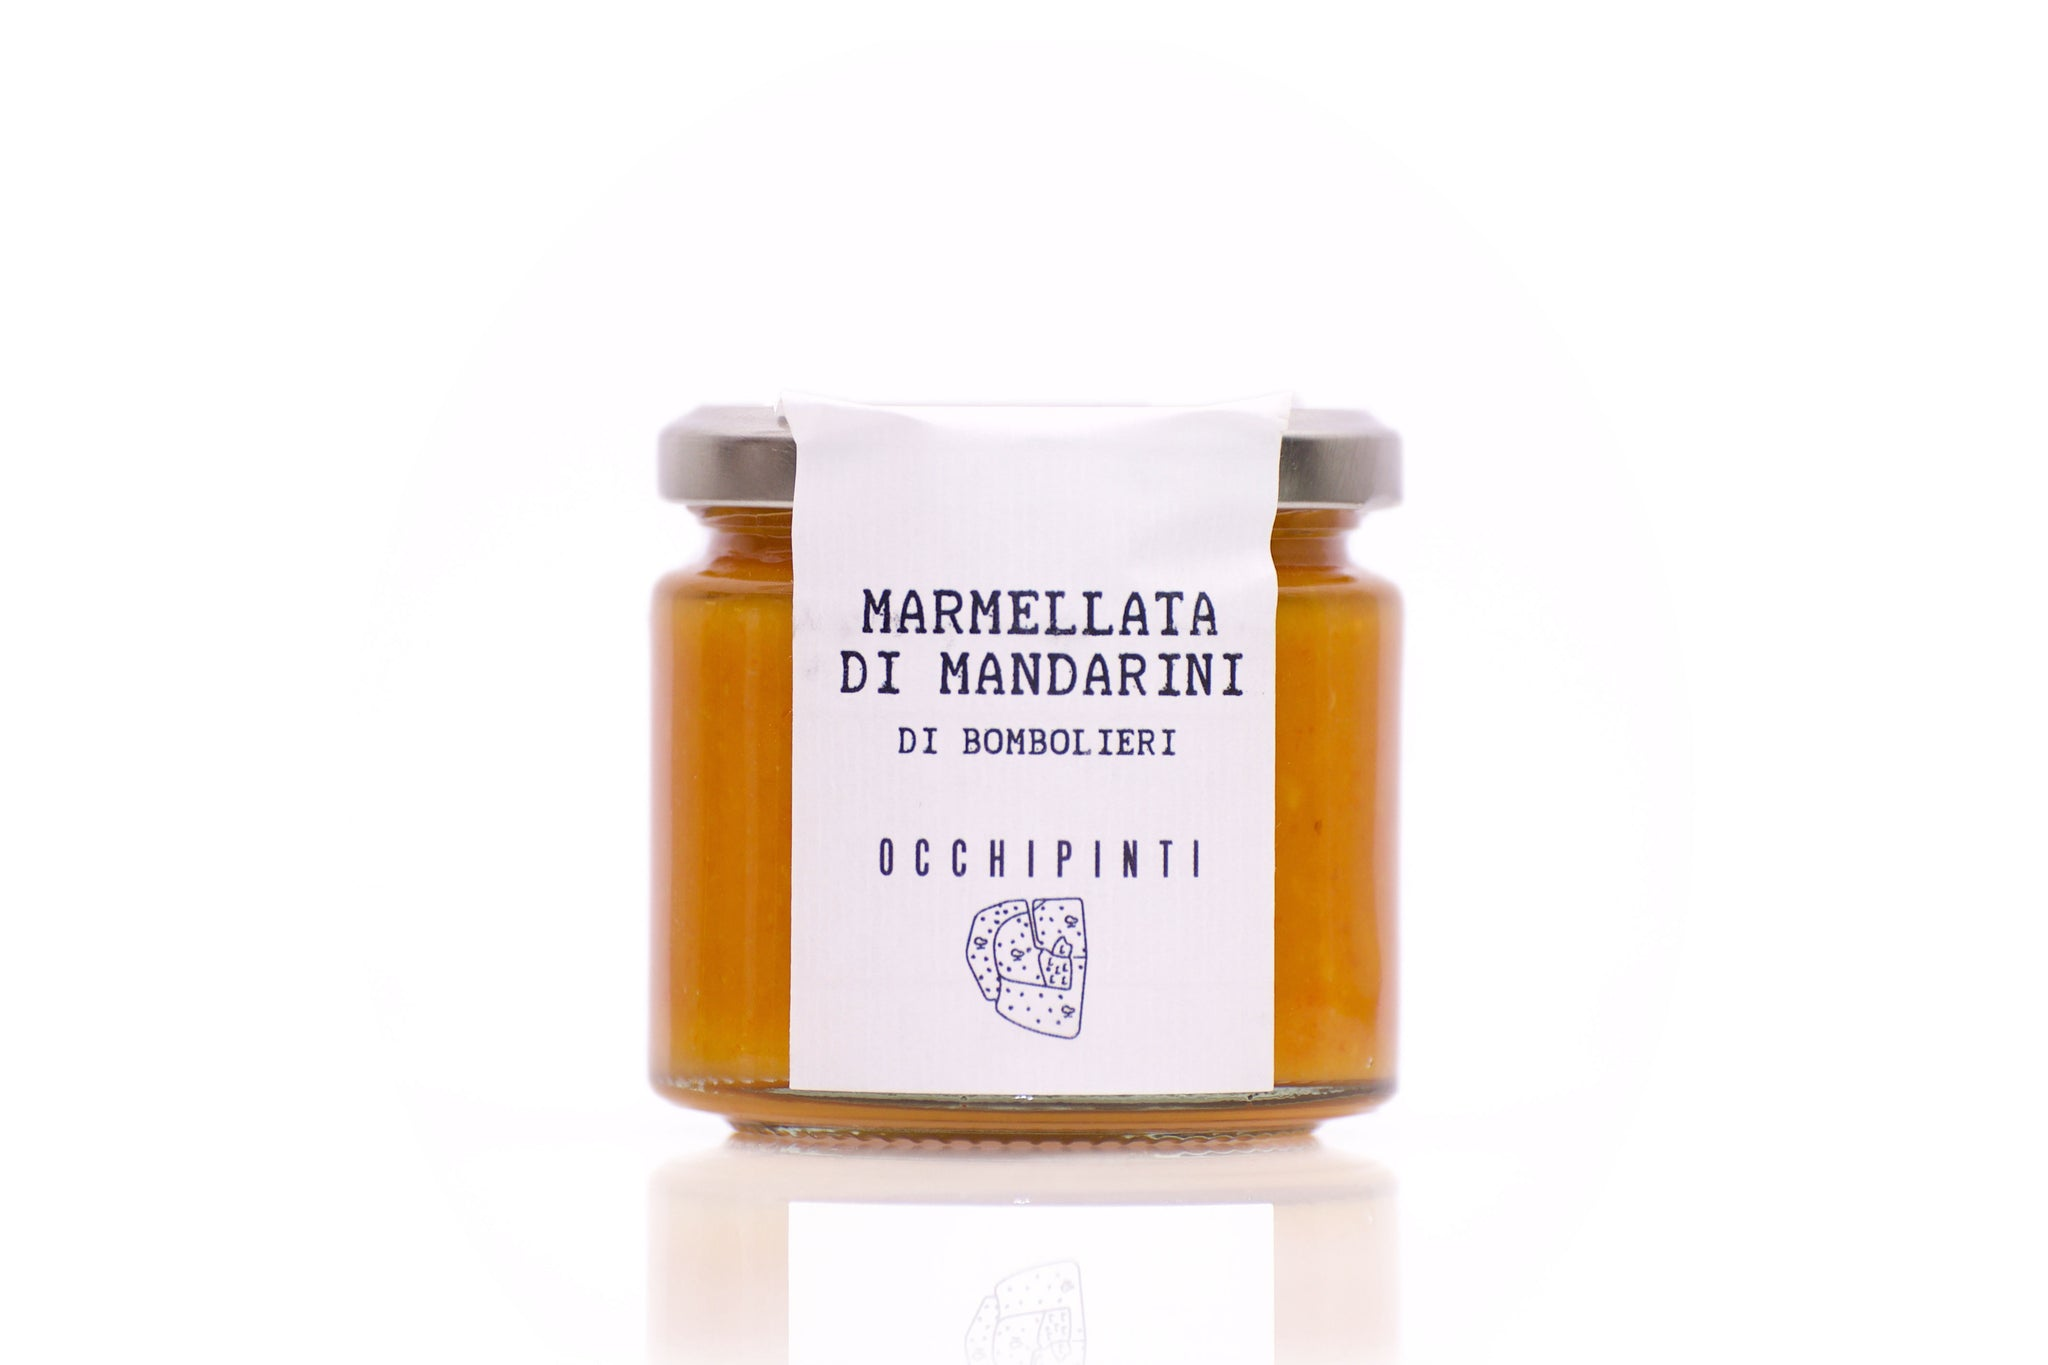 Arianna Occhipinti Mandarin Marmalade exclusive to the Red Beetle